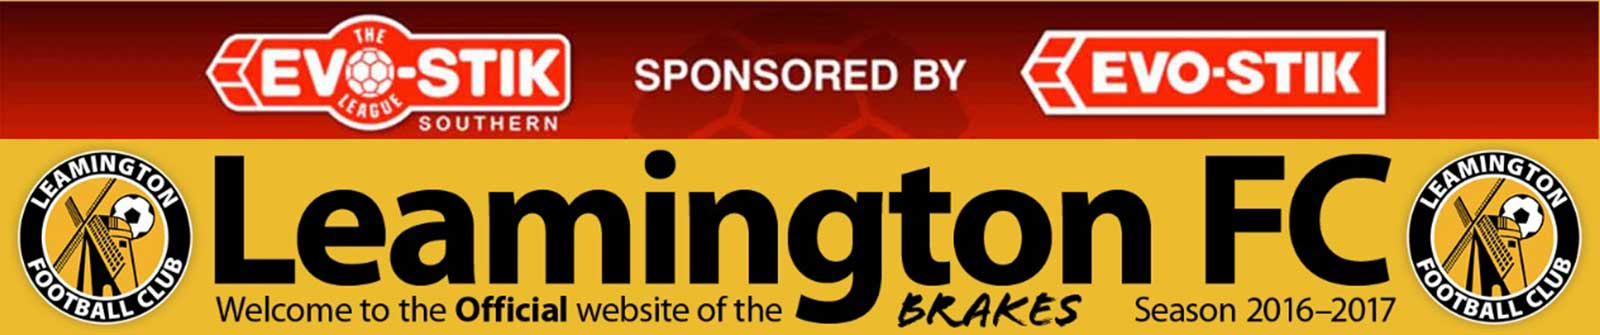 Leamington FC - Home of the Brakes